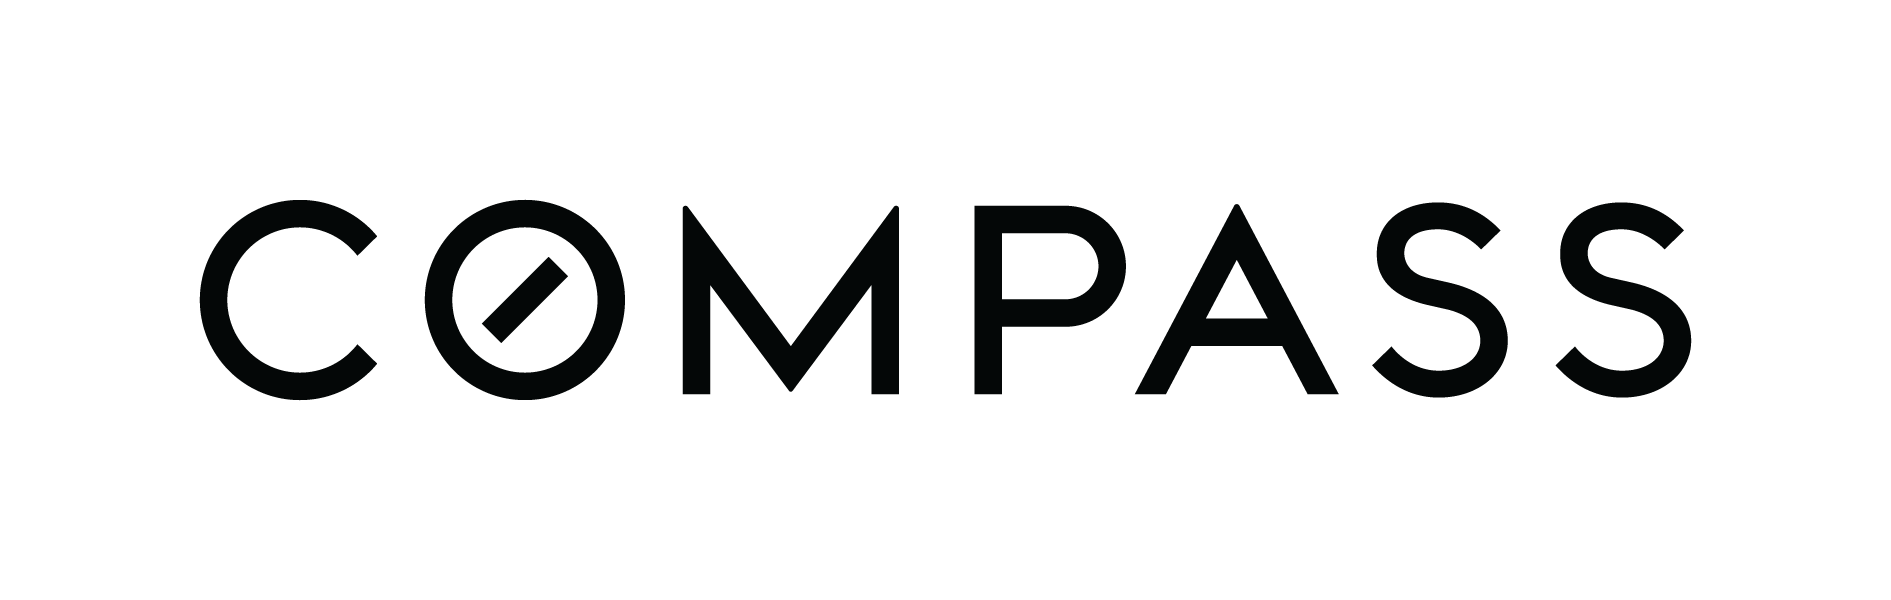 compass_logo_black_transparent.png